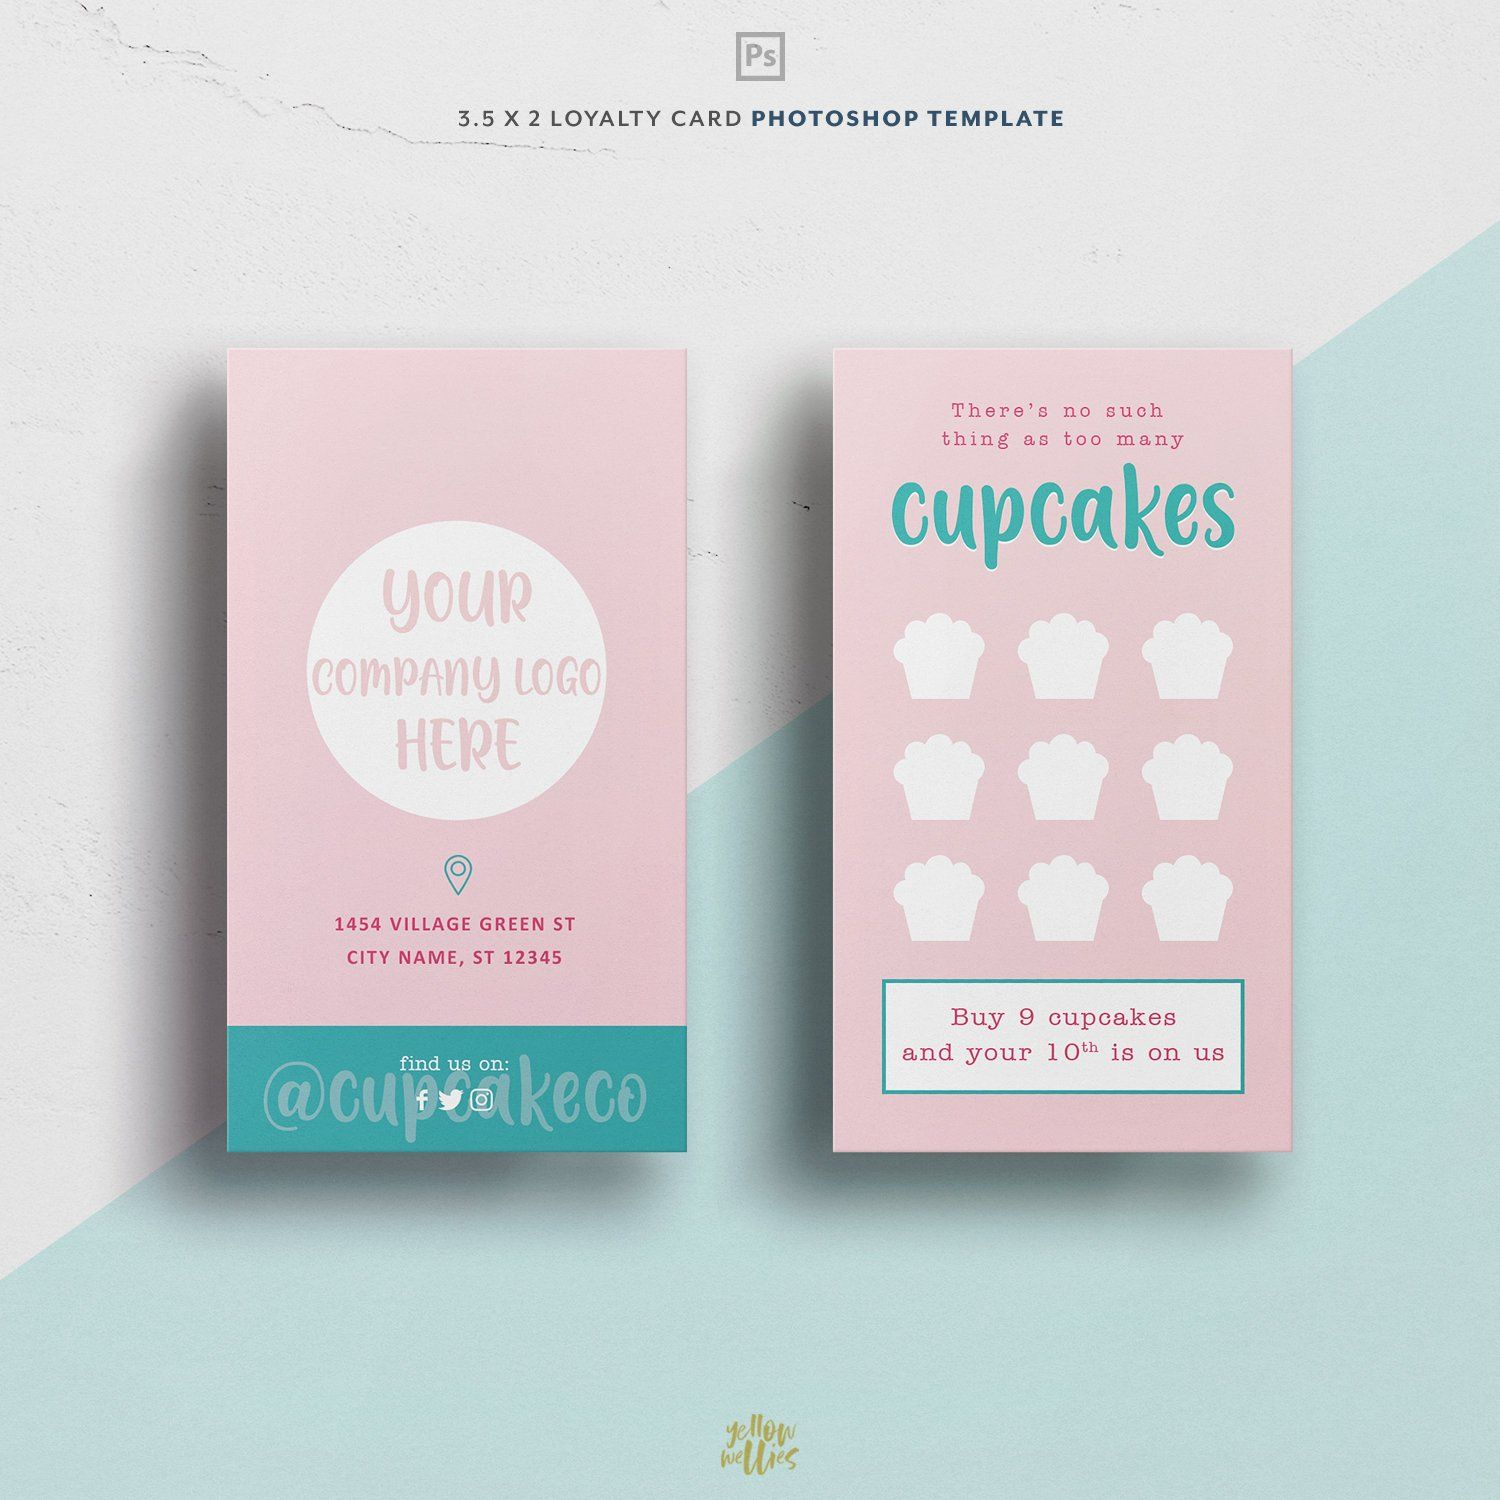 Cupcake Bakery Loyalty Card Photo